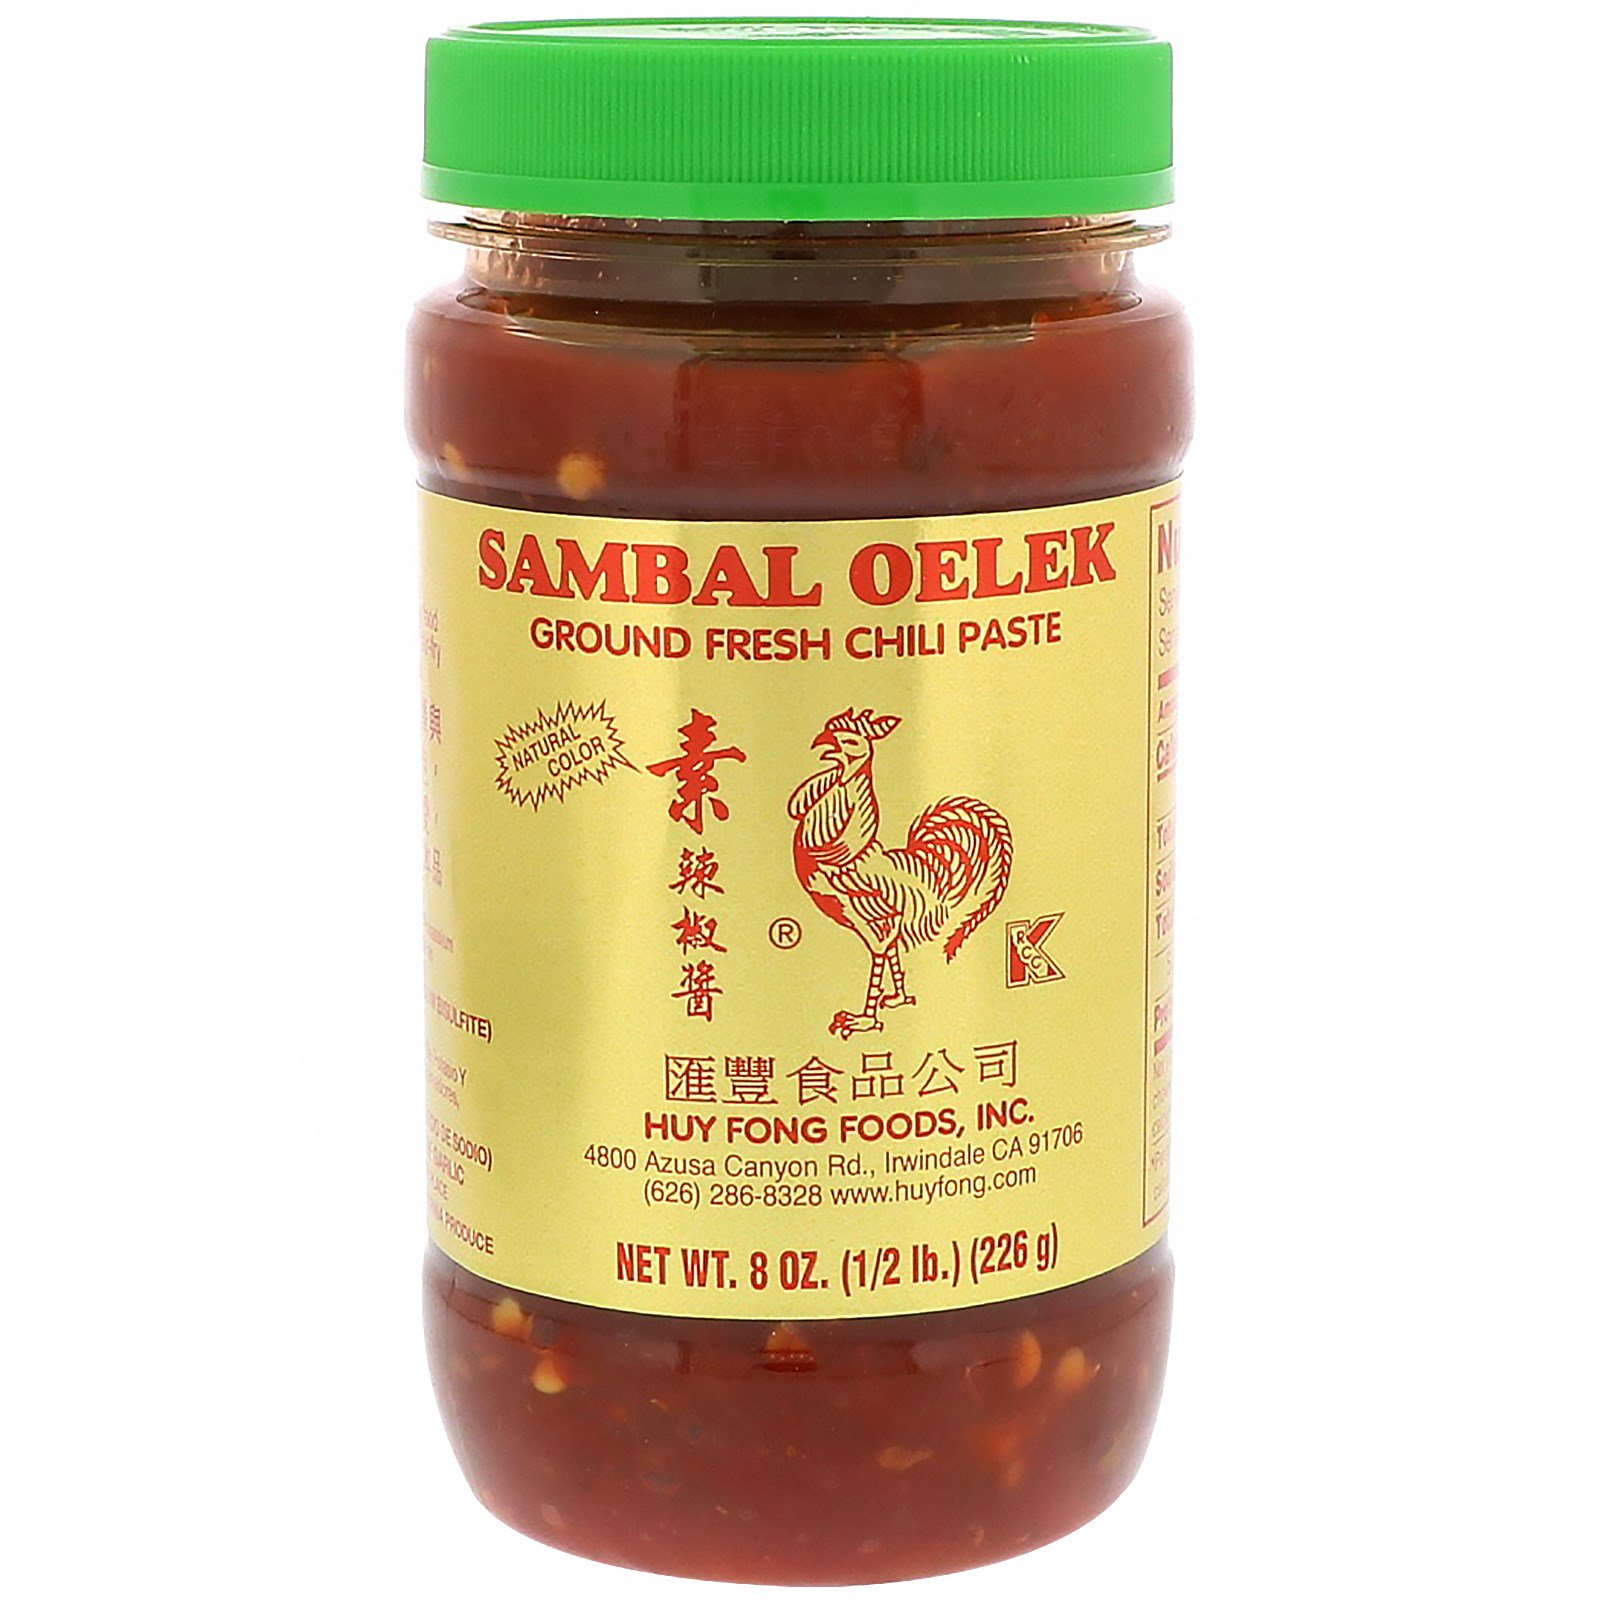 How to make sambal oelek chili paste